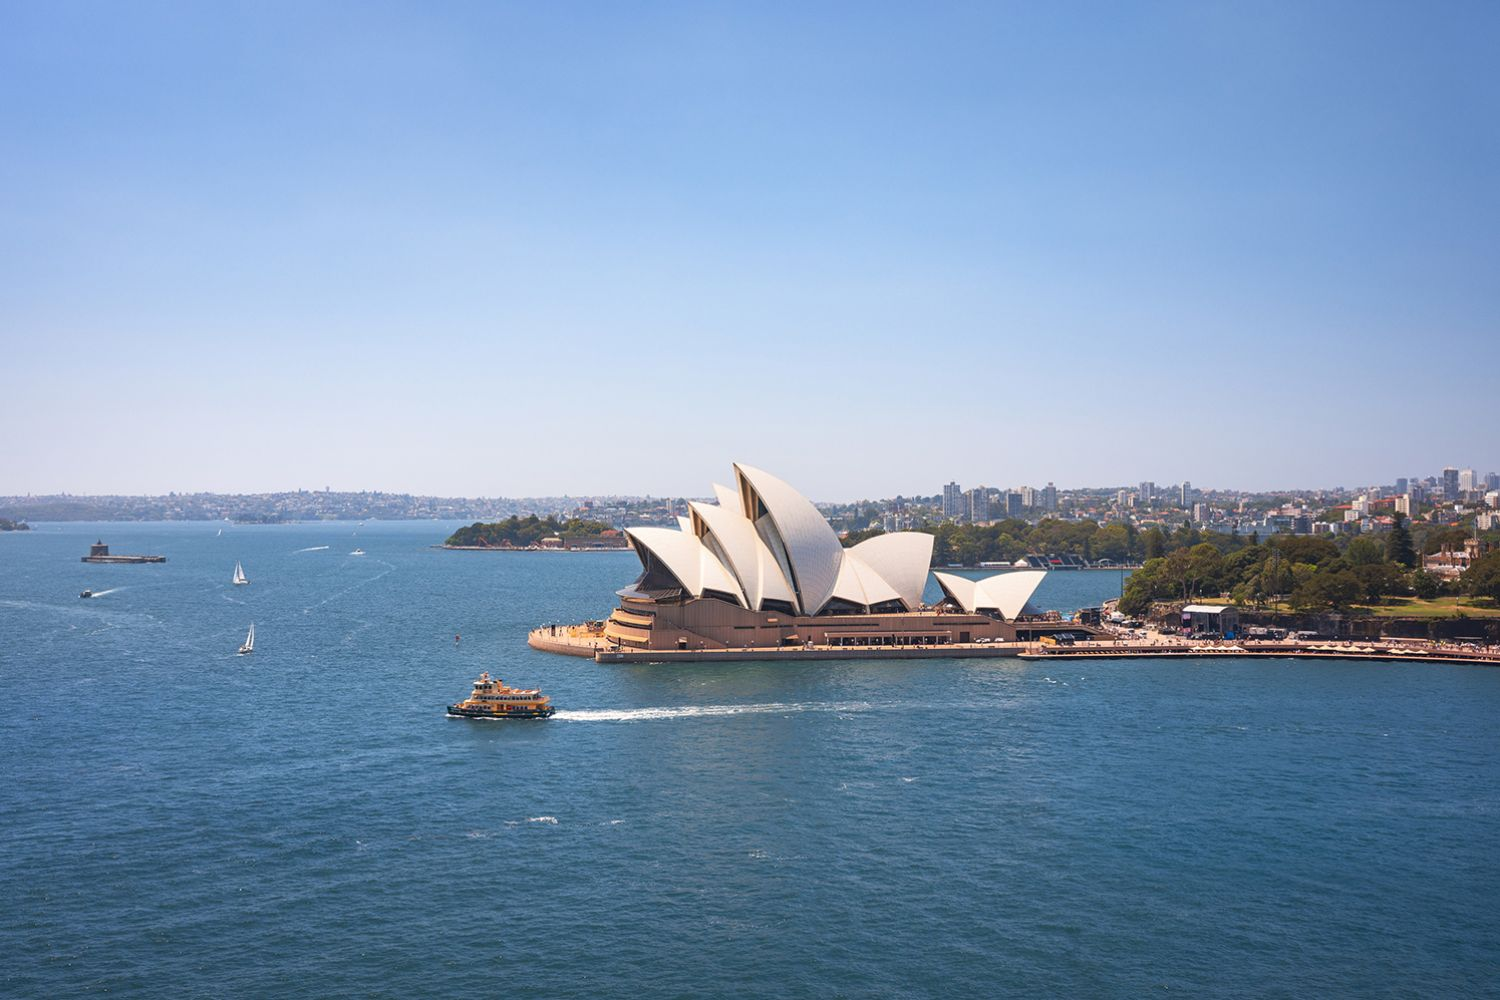 Ferry passing the Sydney Opera House on a summer's day, Sydney